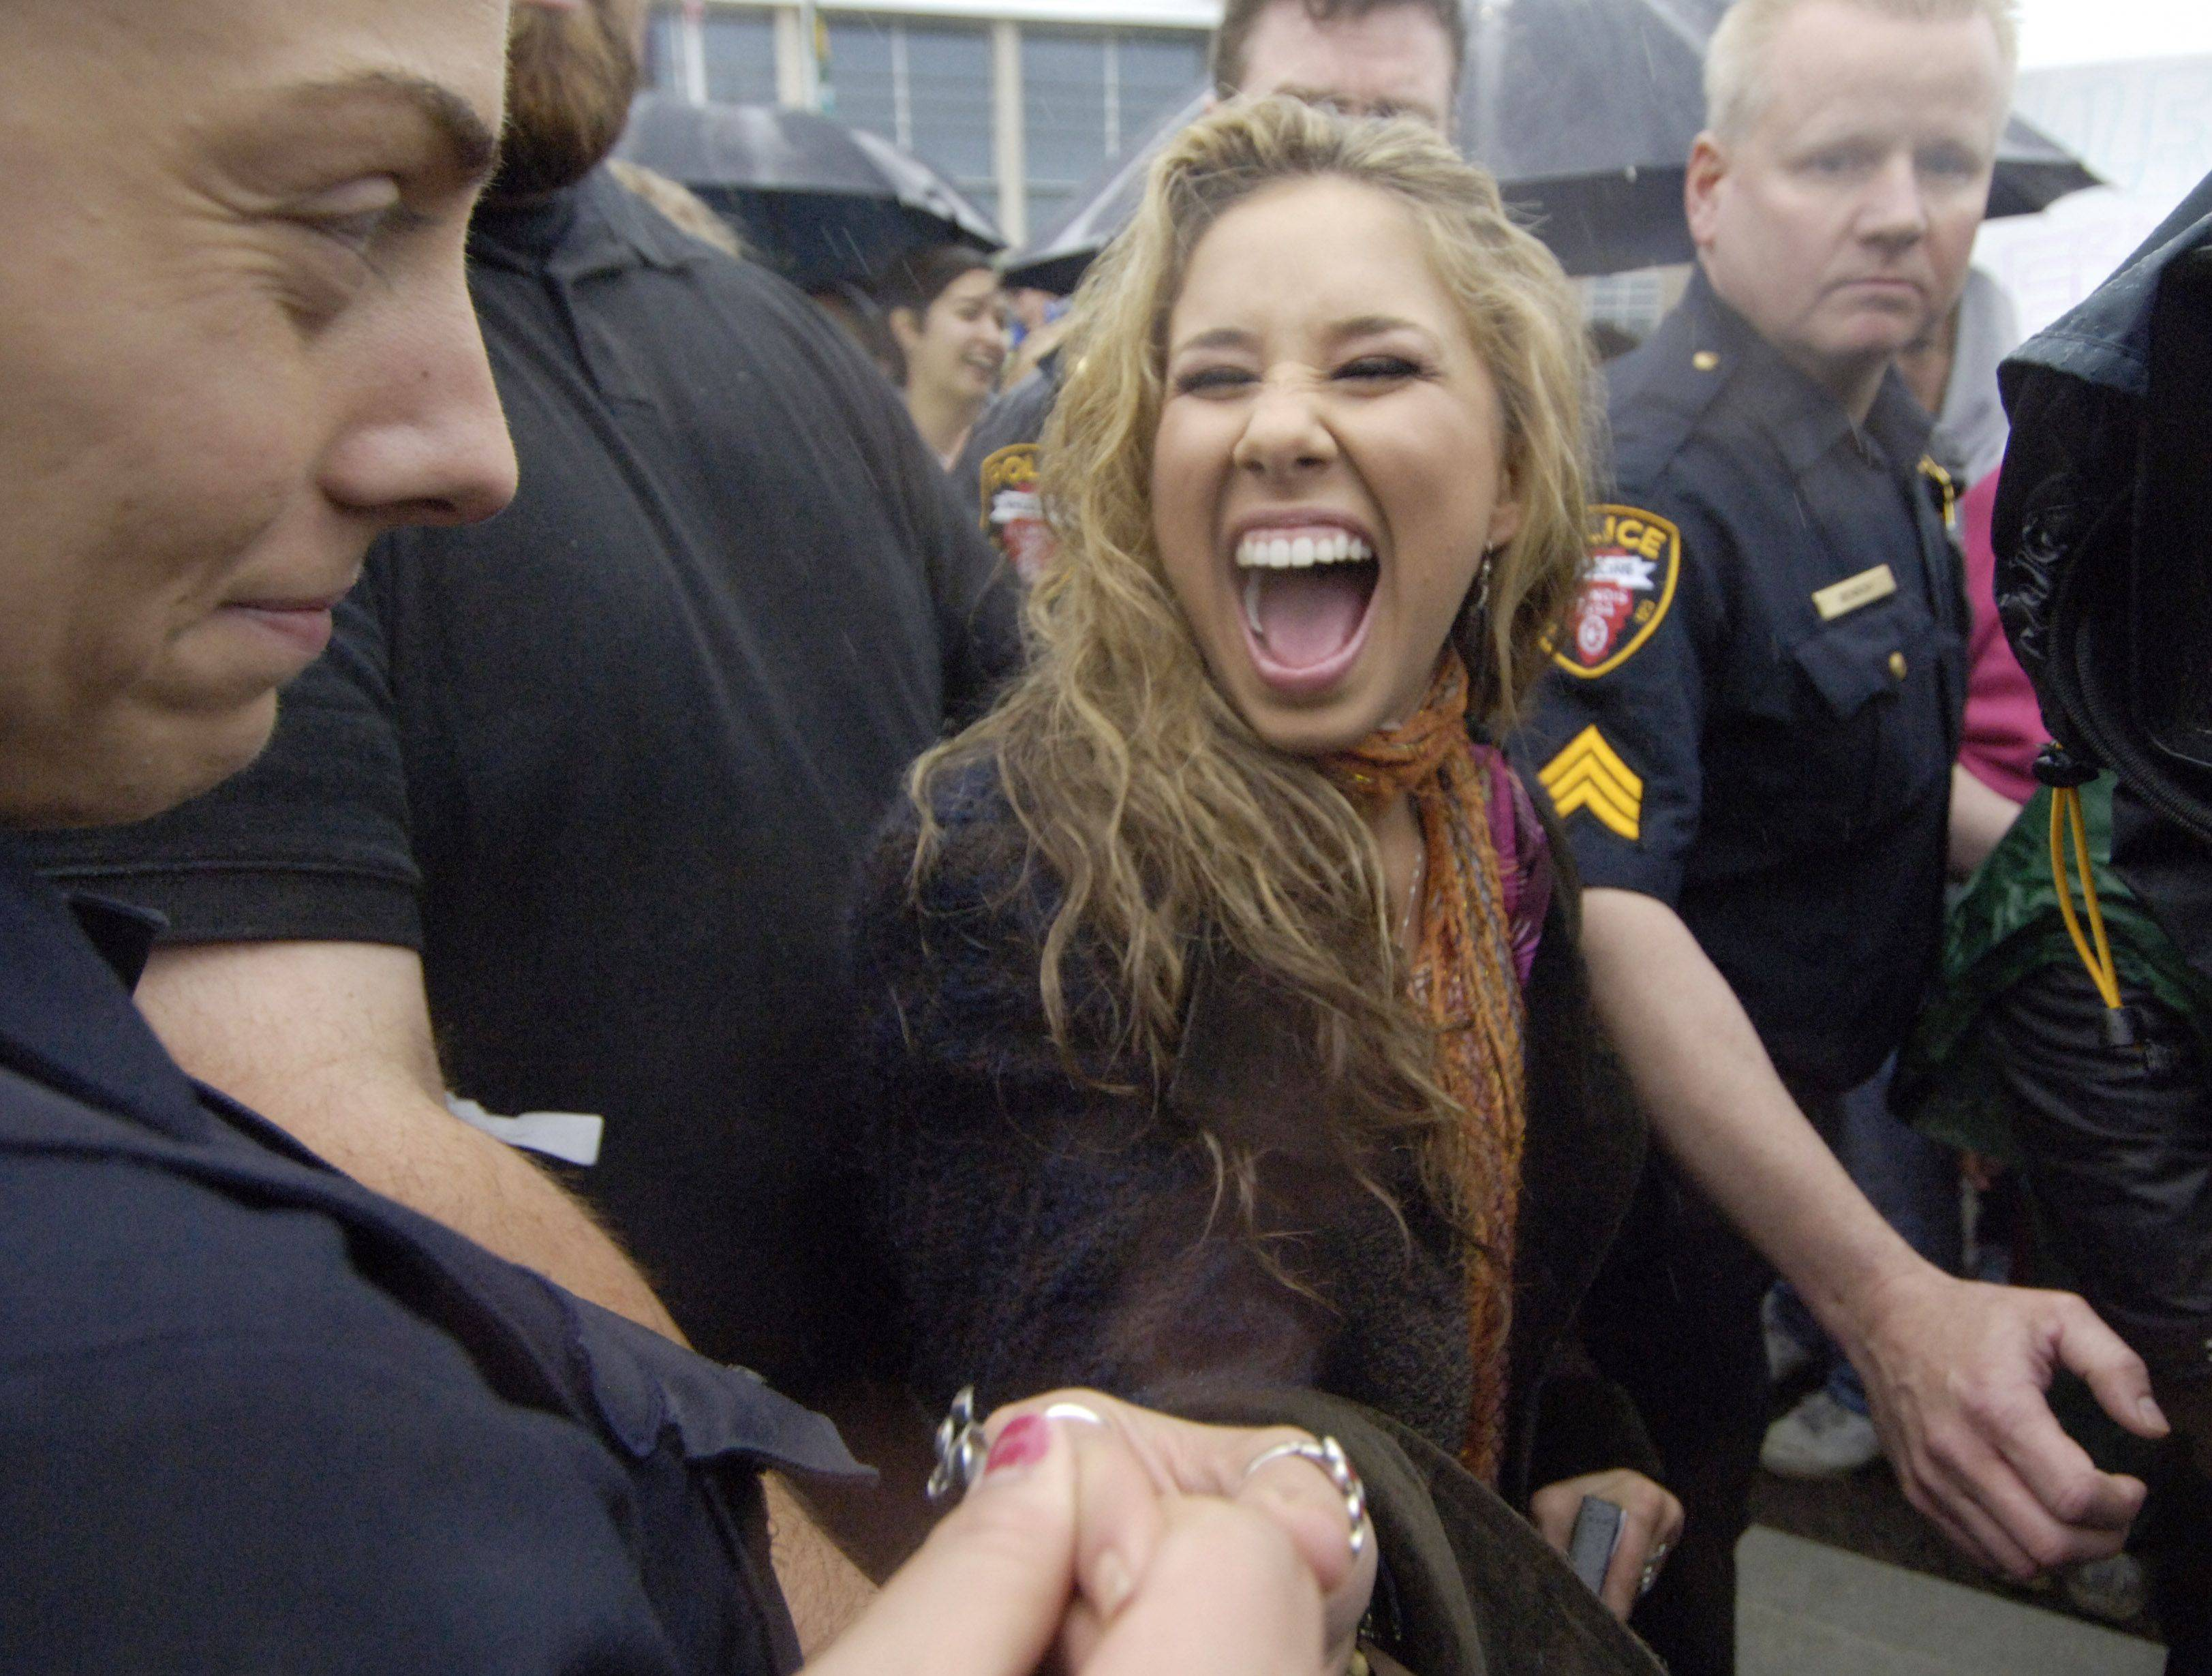 American Idol finalist Haley Reinhart is escorted back to her limo after a gathering at the Wheeling Village Hall Saturday